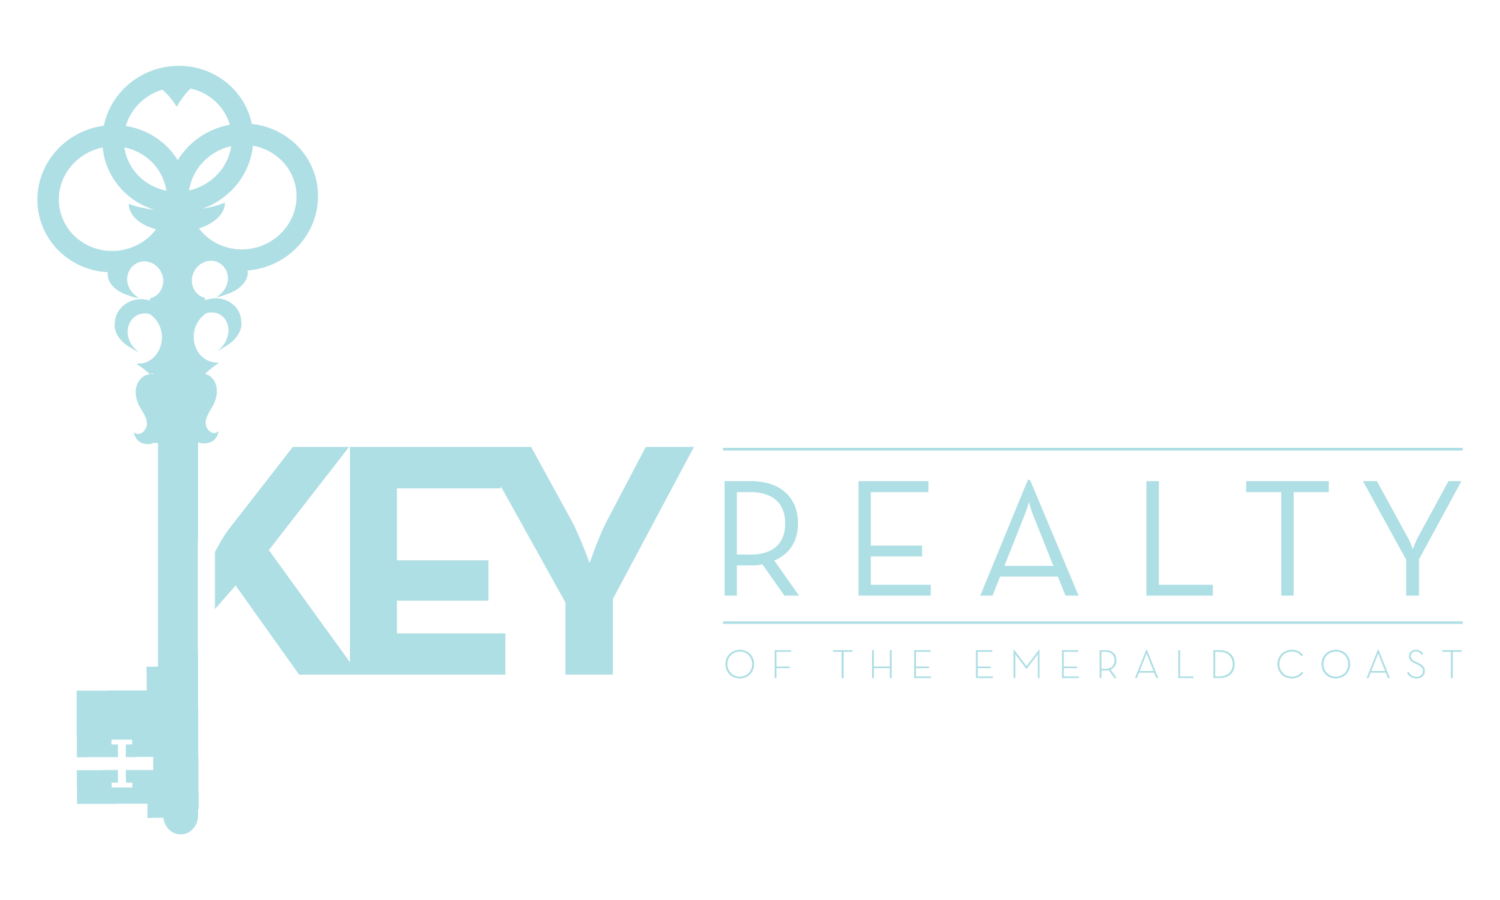 Key Realty of the Emerald Coast